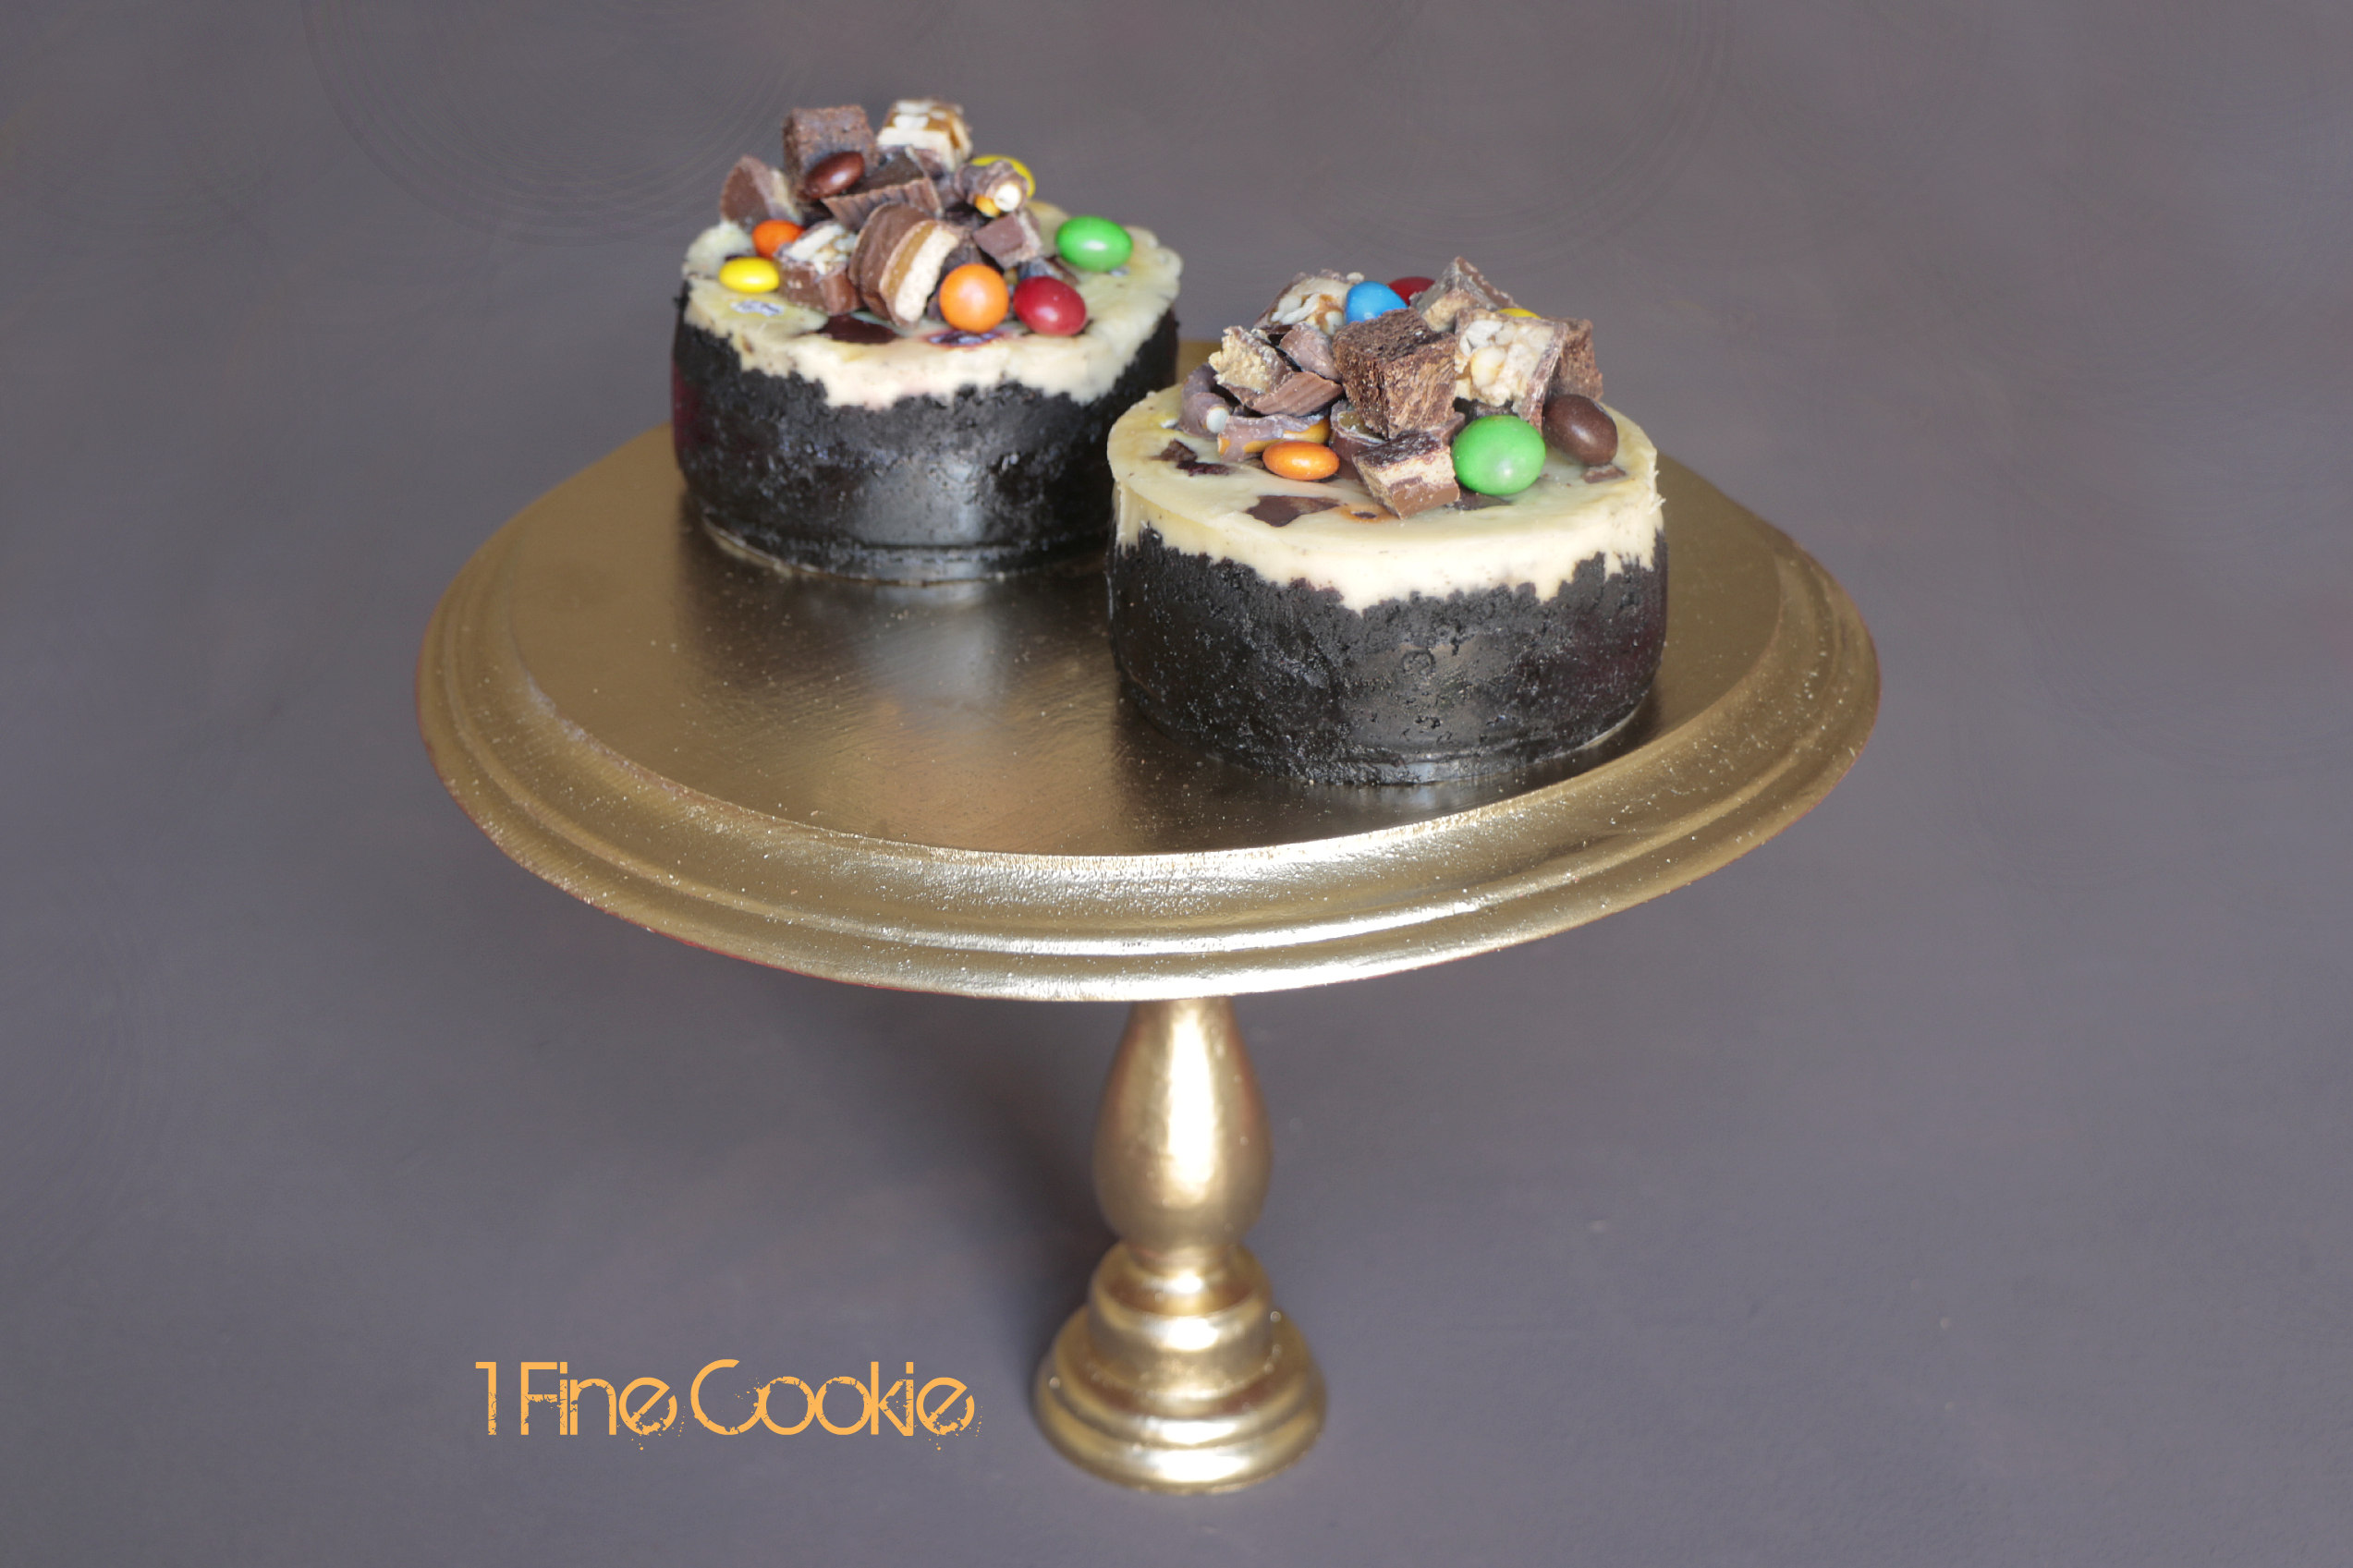 Everything But The Kitchen Sink everything but the kitchen sink candy cheesecake - 1 fine cookie